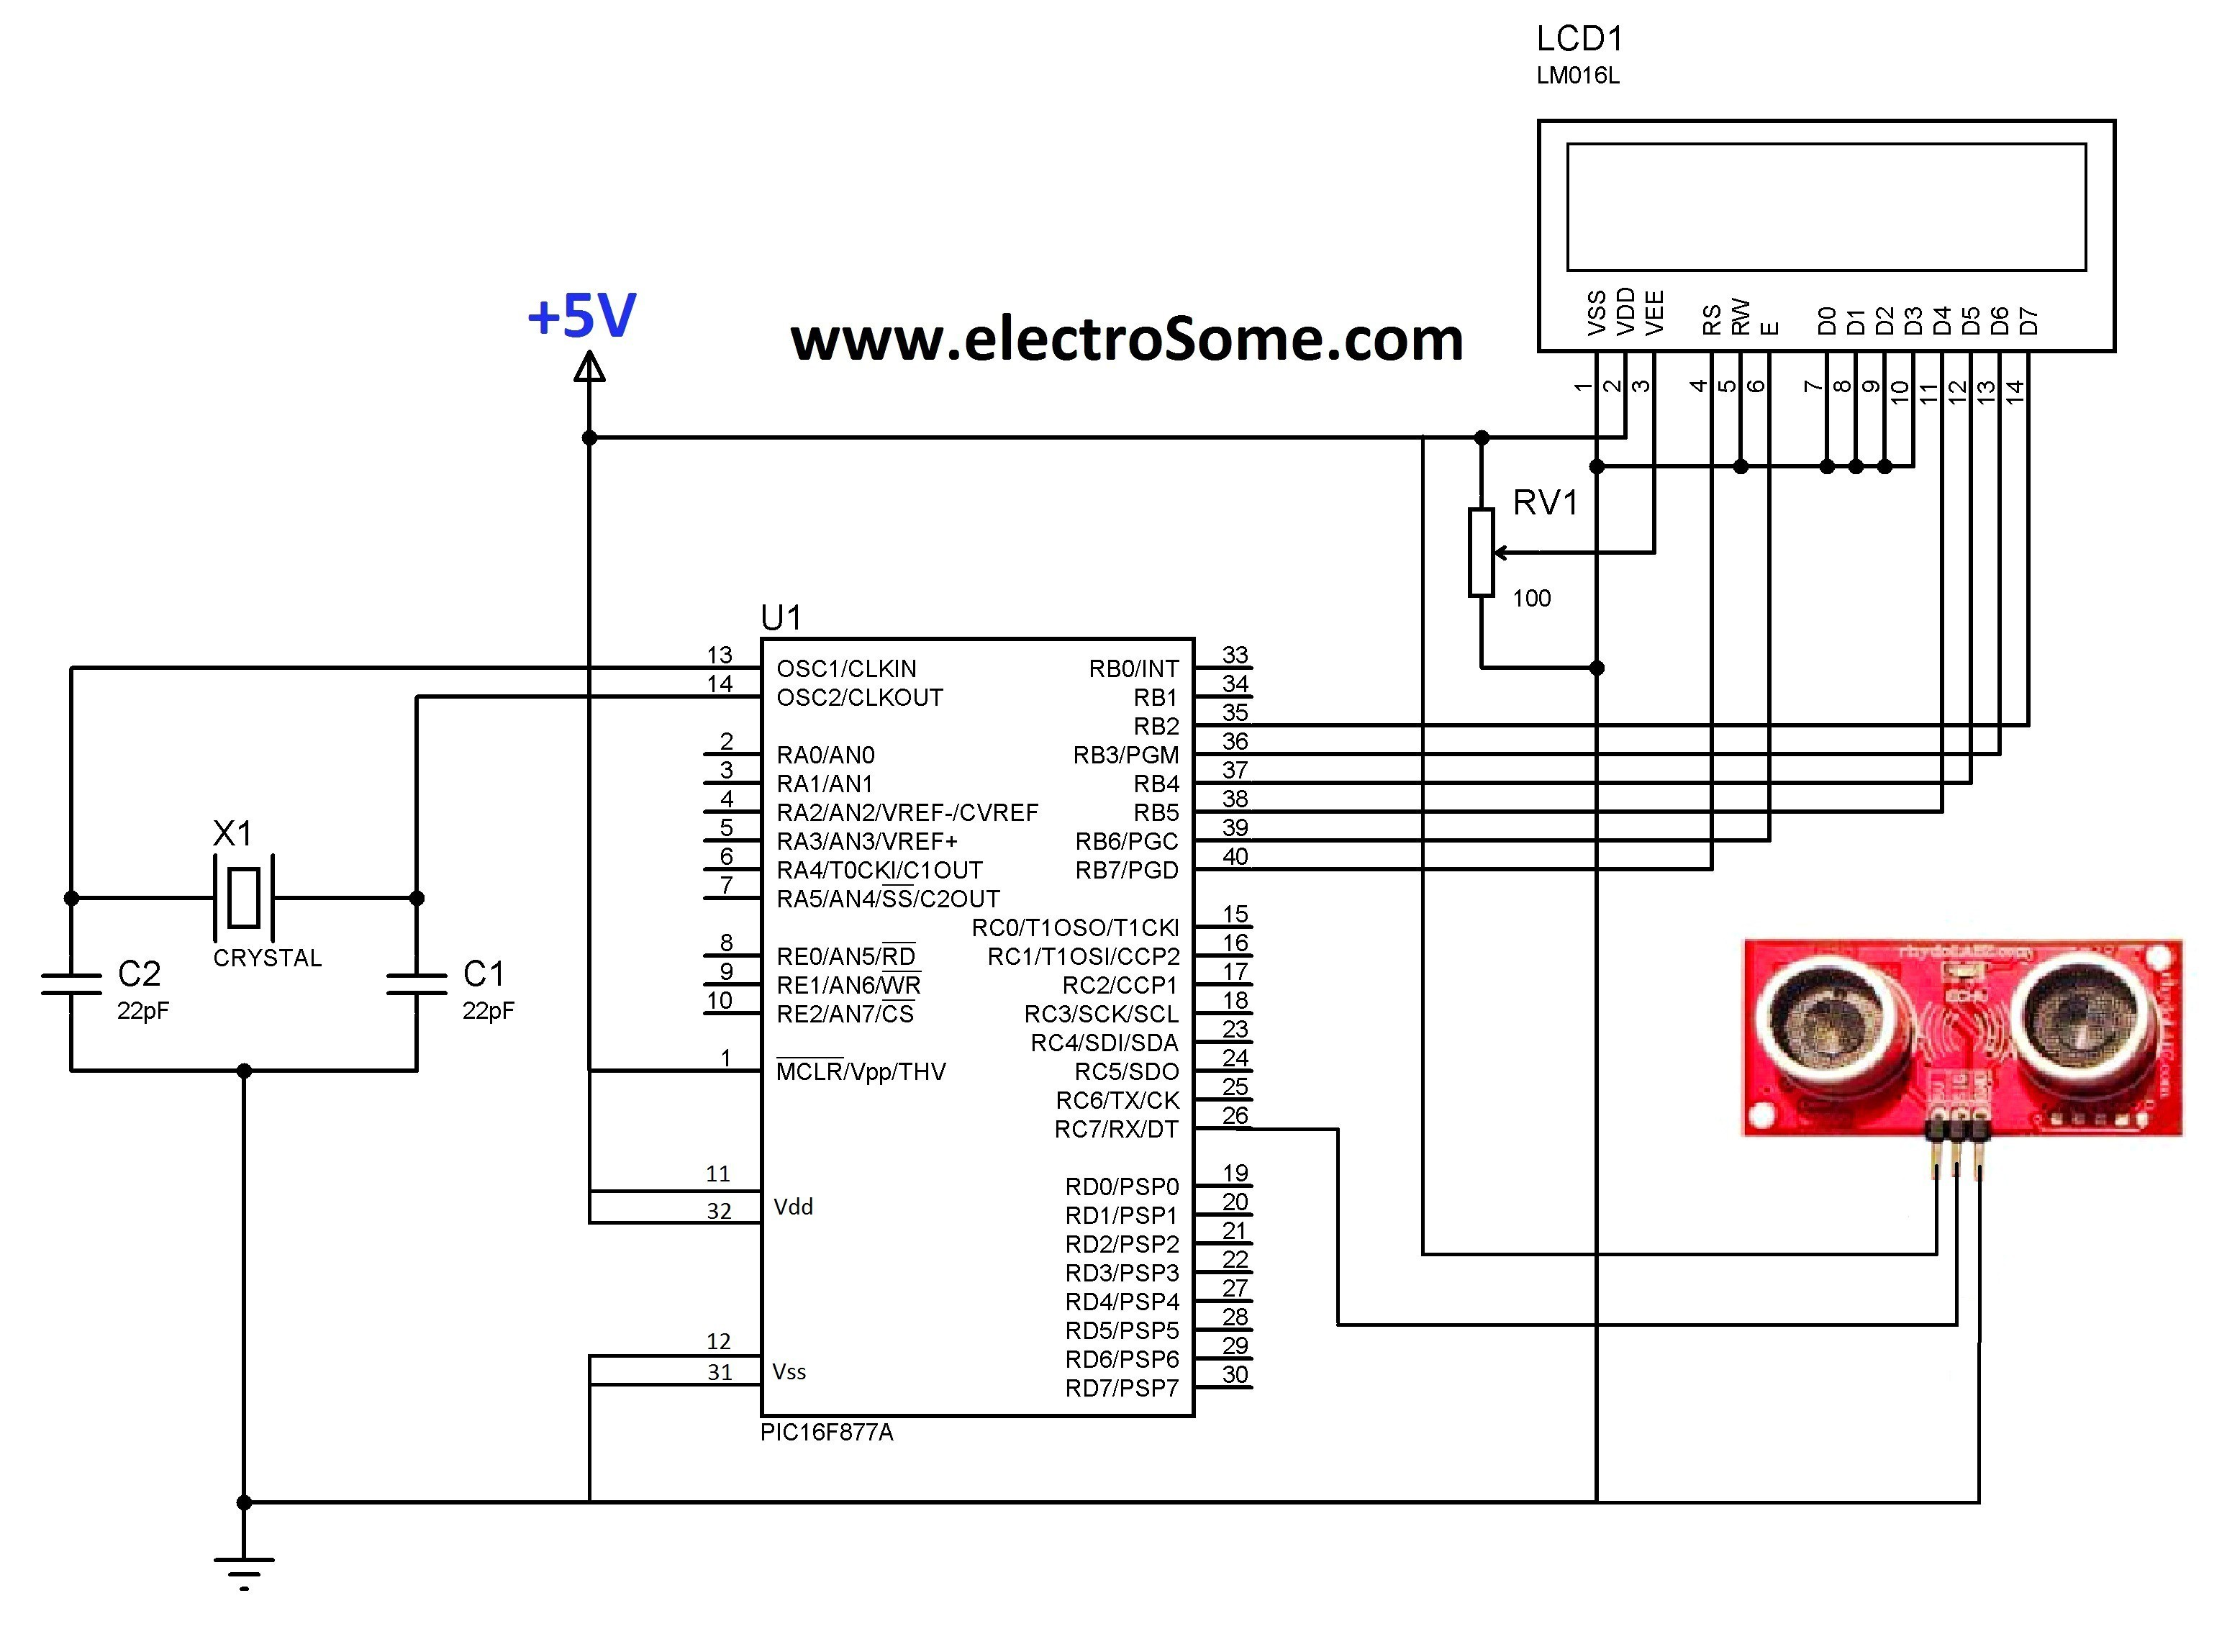 Wiring Photocell to Lighting Contactor F62dca3 tork Lighting Contactor Wiring Diagram Of Wiring Photocell to Lighting Contactor